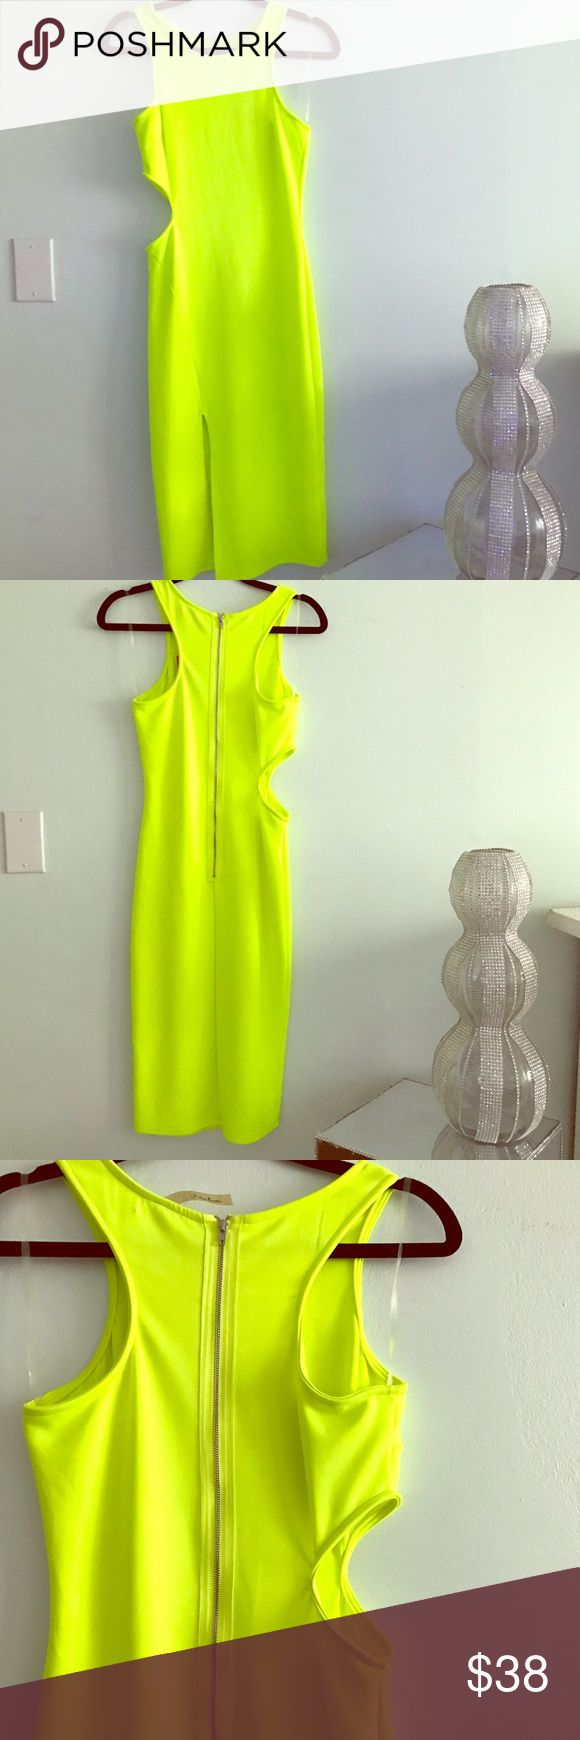 Neon yellow dress Neon yellow midi dress with small split in the from and cut out on one side. Beautiful bodycon dress. Worn once Dresses Midi